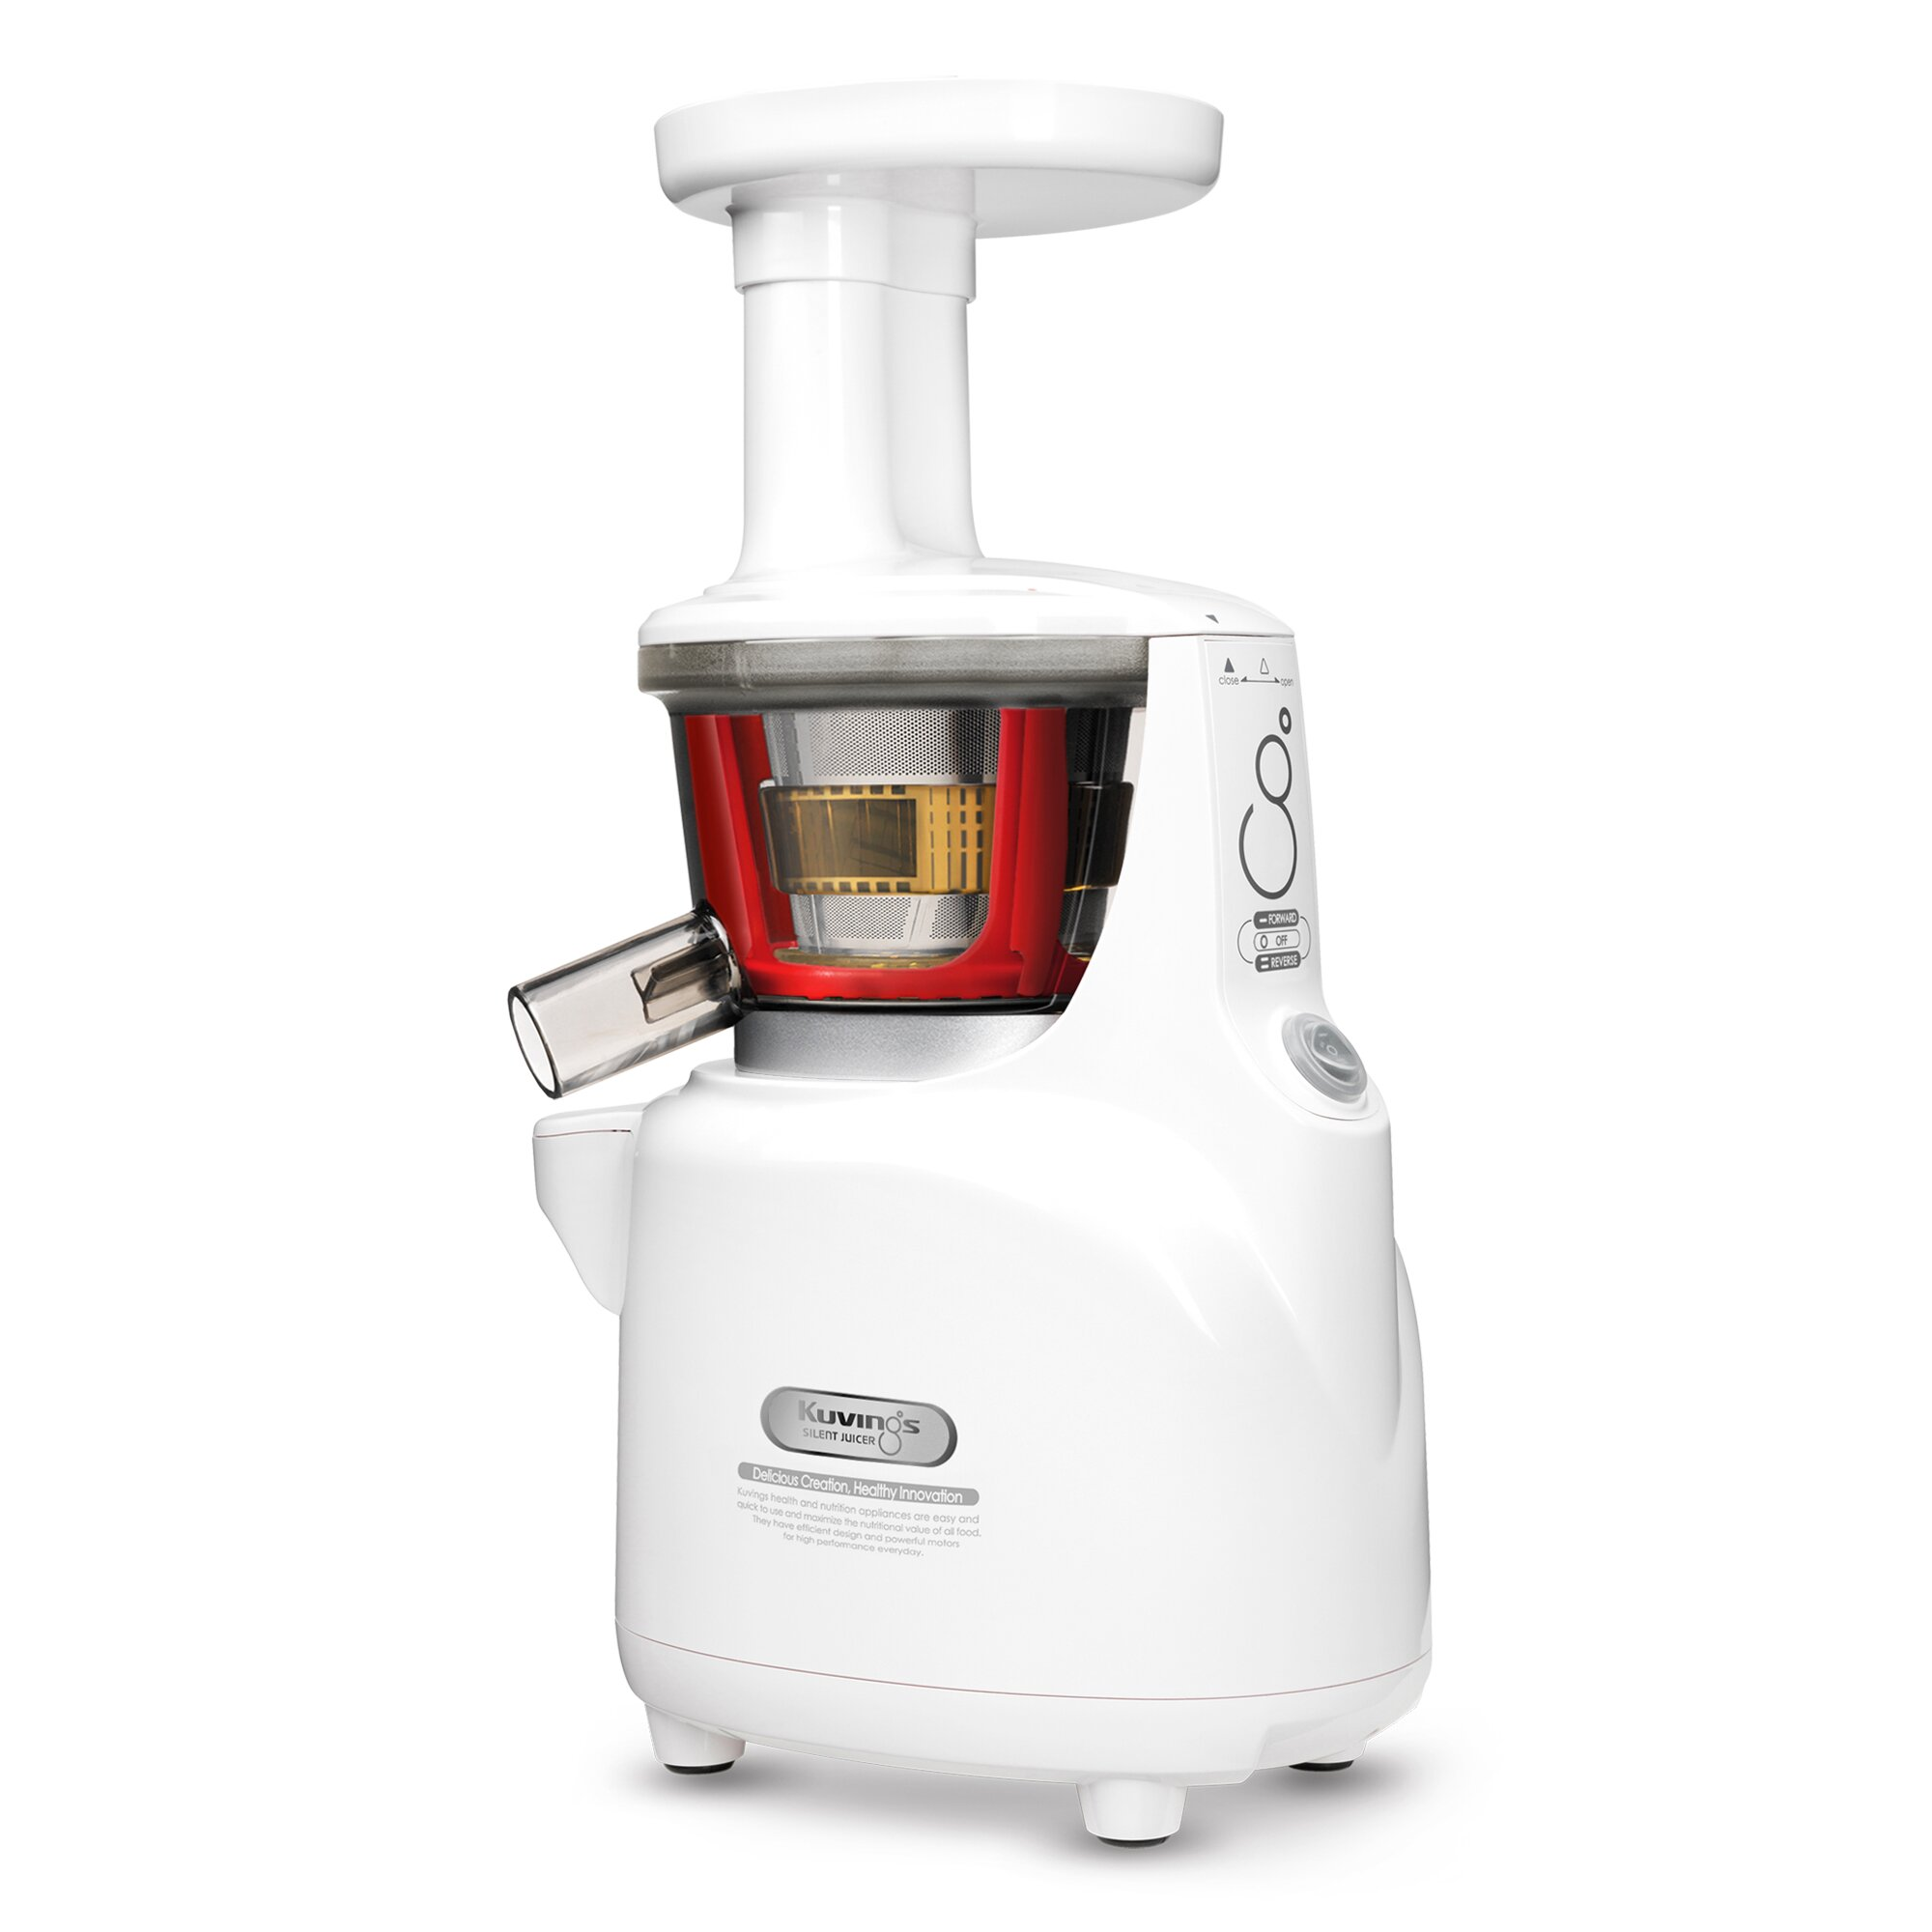 KUvINGS Silent Juicer & Reviews Wayfair